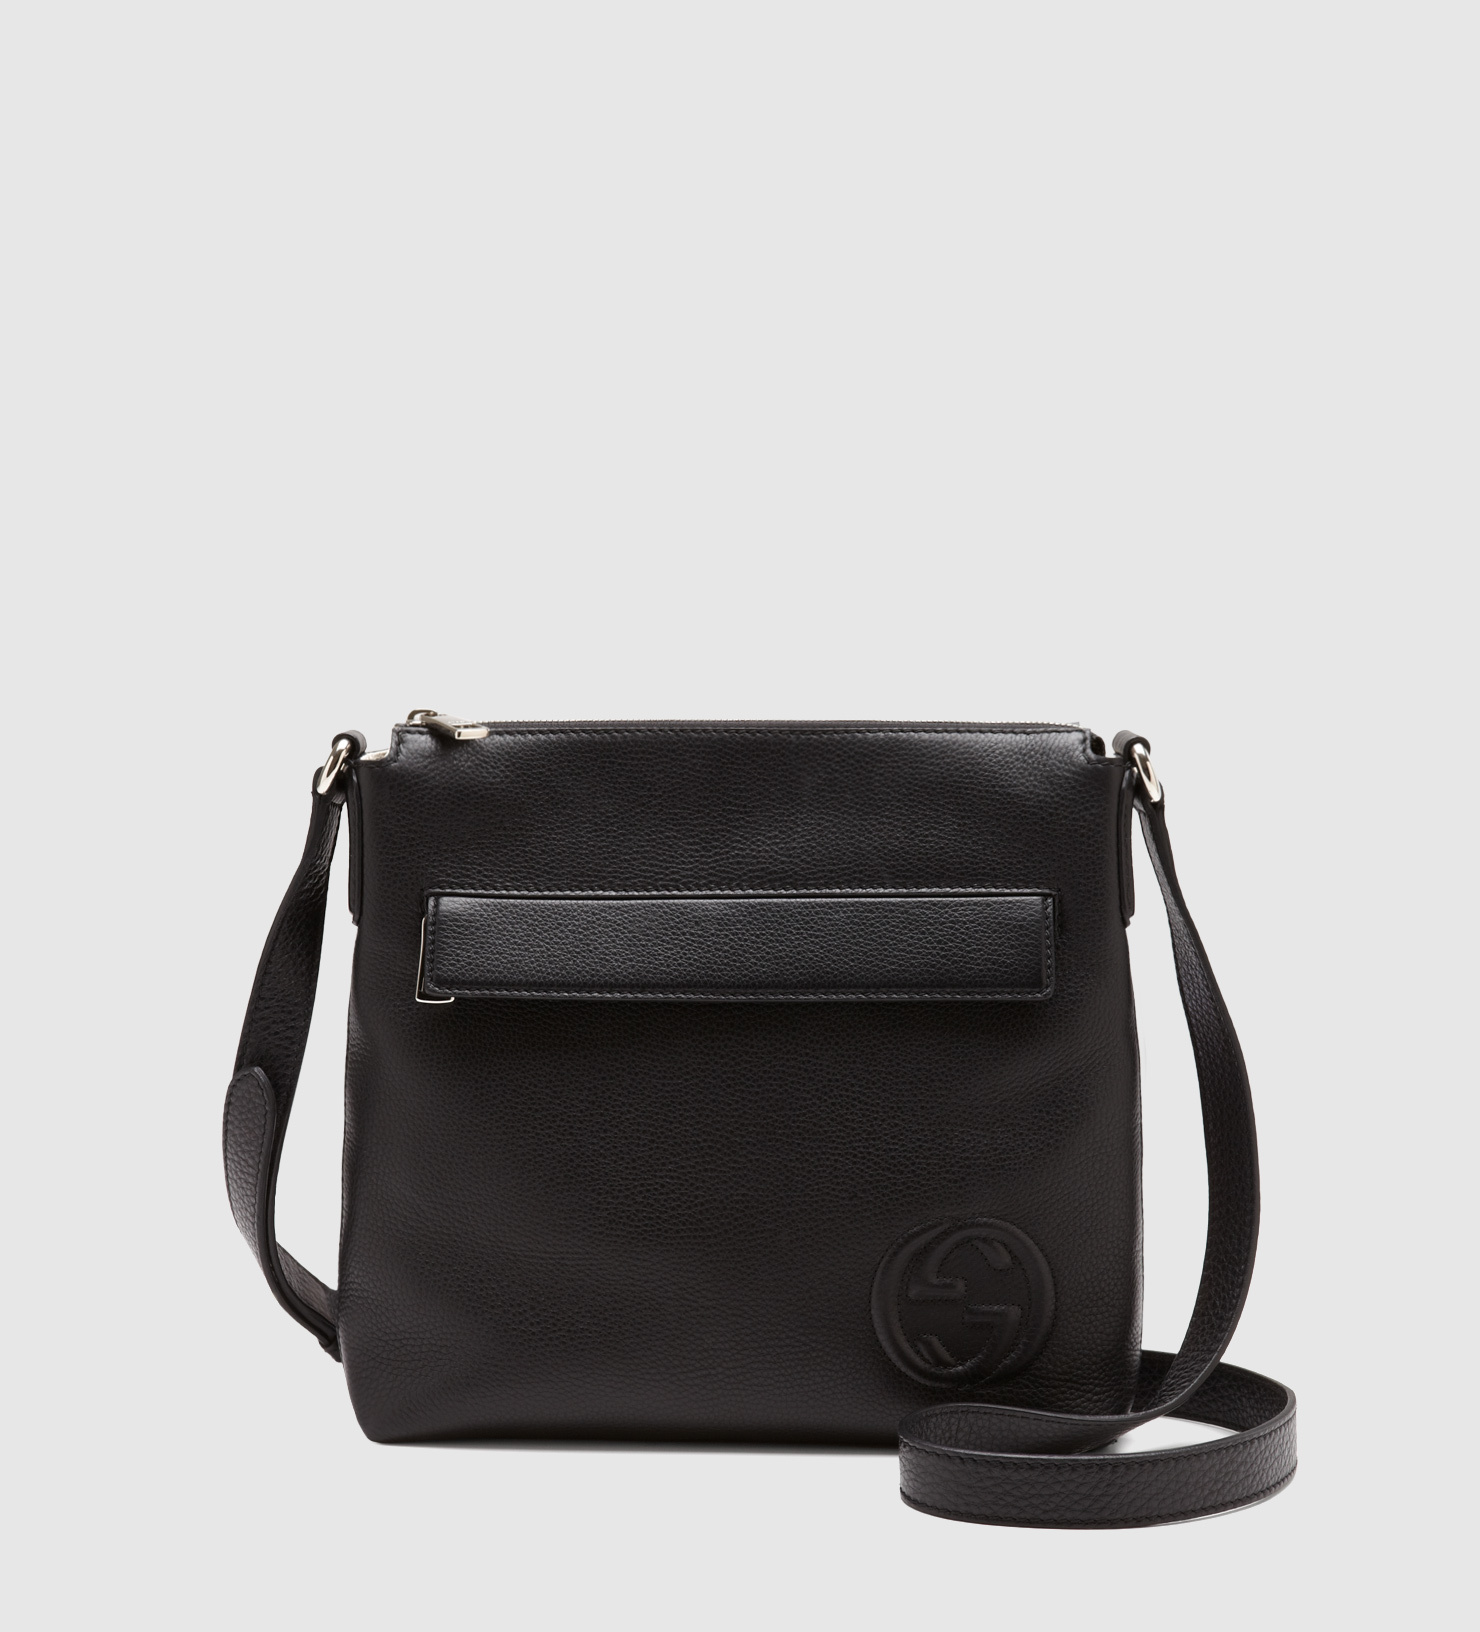 7f714e03f24d4e Gucci Mens Leather Messenger Bag | Stanford Center for Opportunity ...